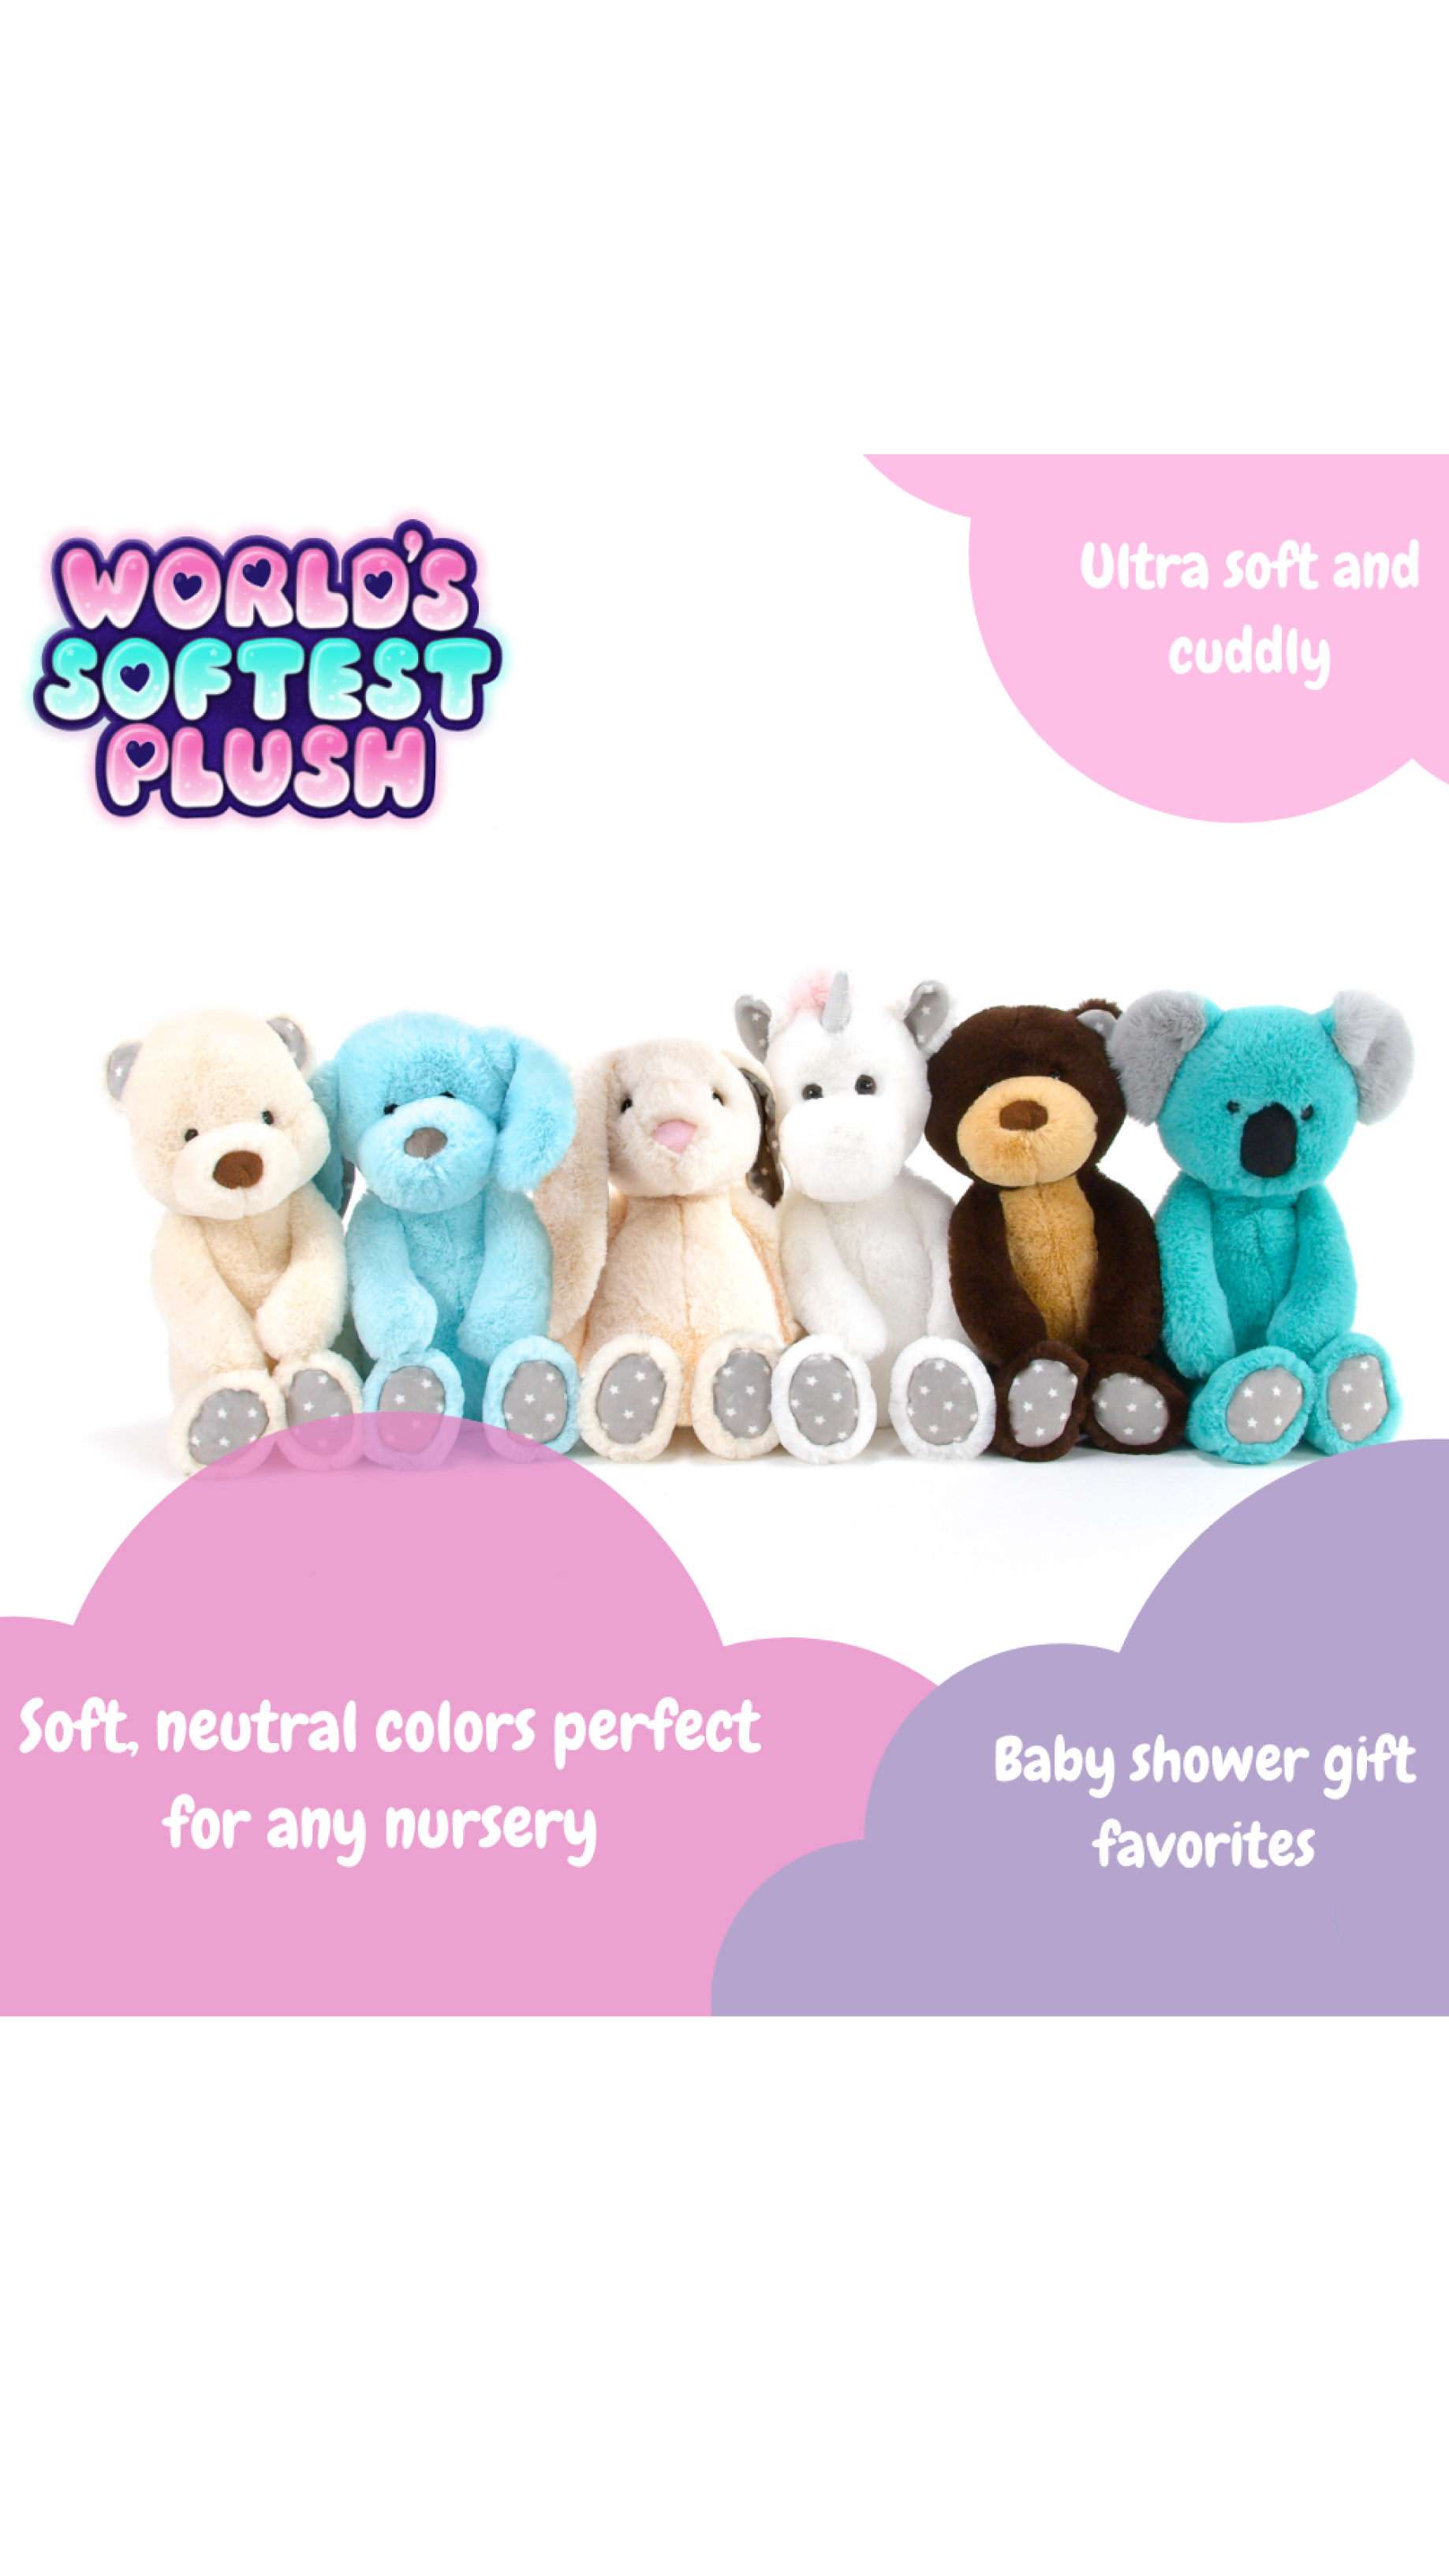 NEW PLUSH DROP! High-quality and so many cute, cuddley characters!